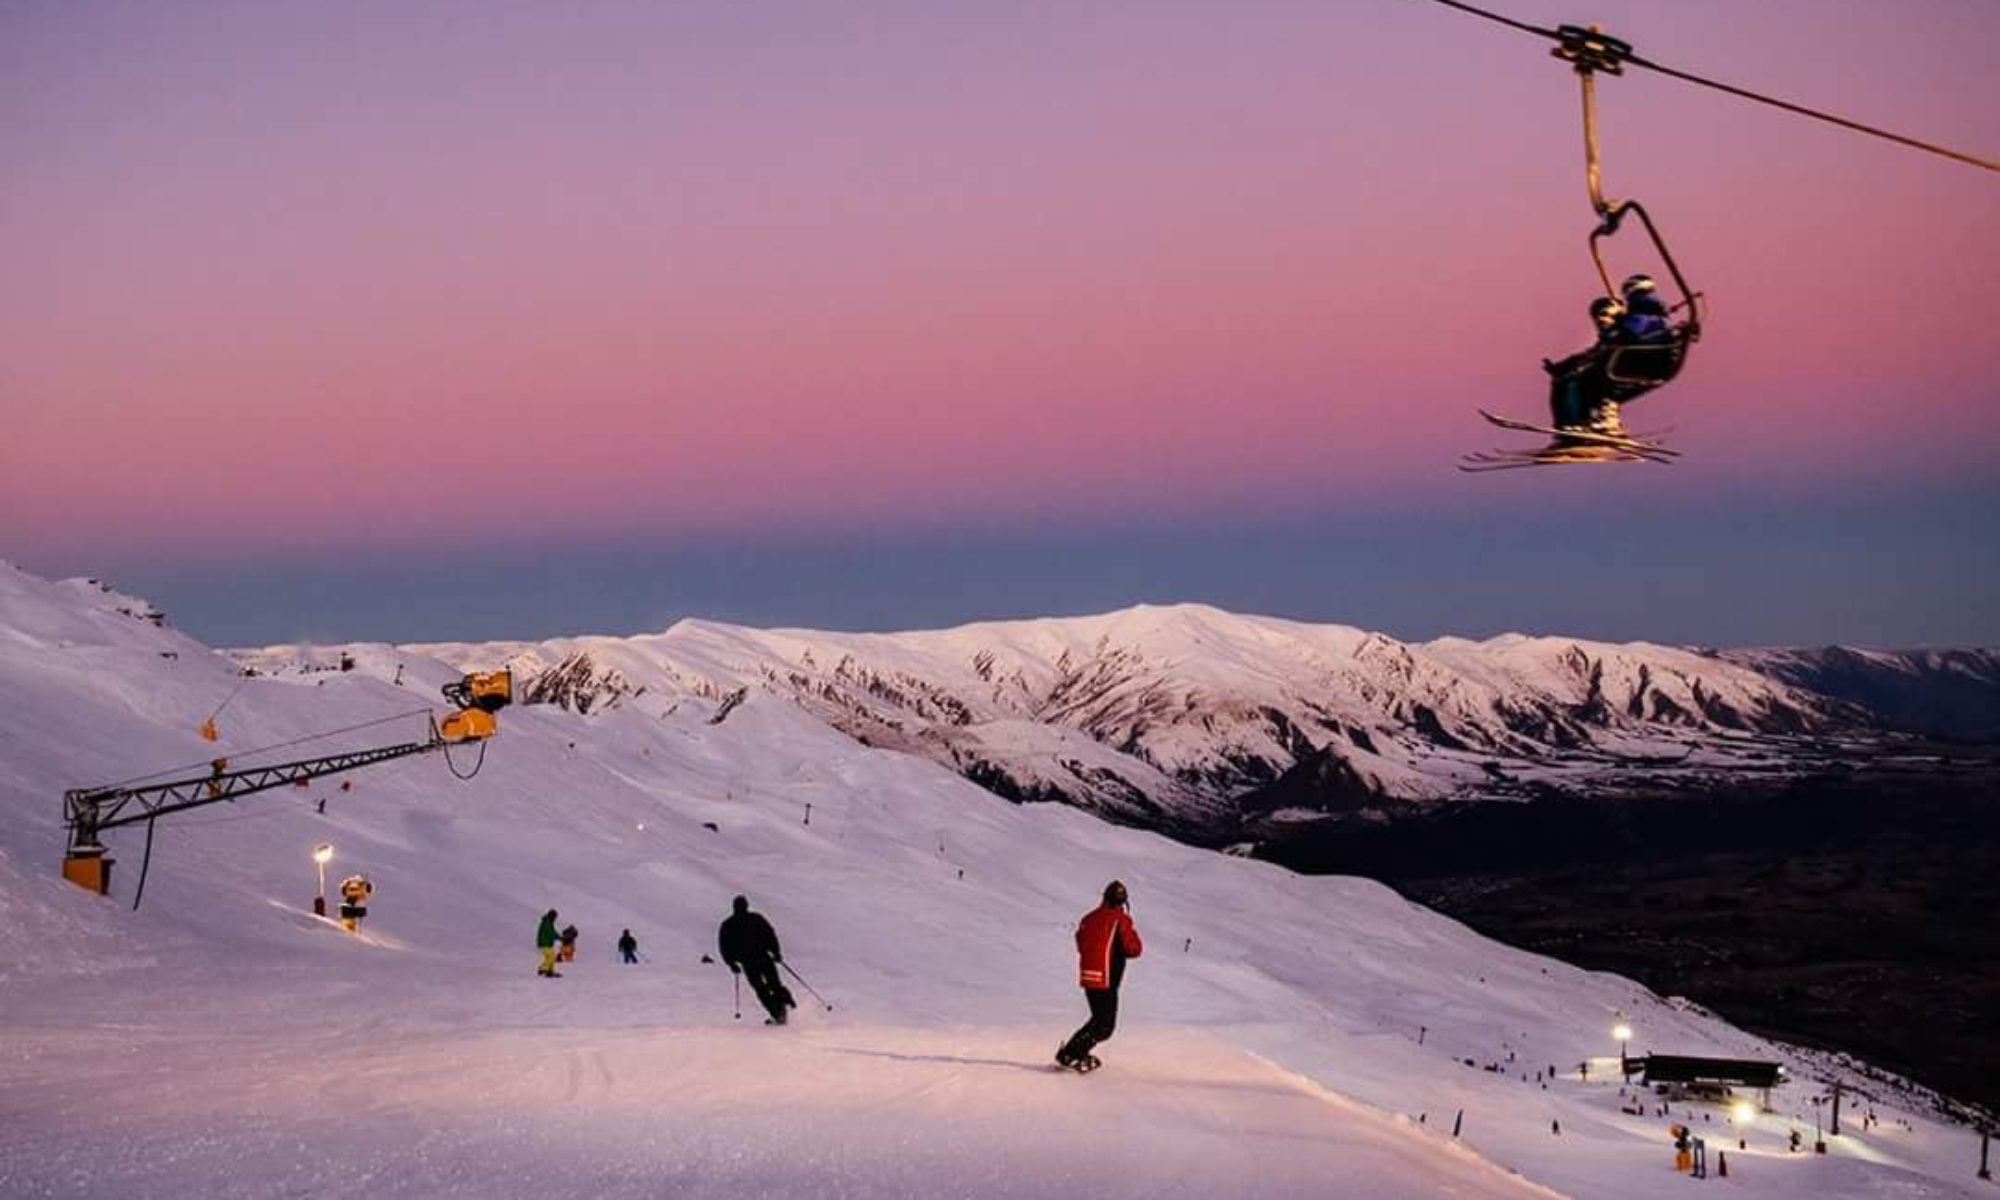 The Otago Ski Club